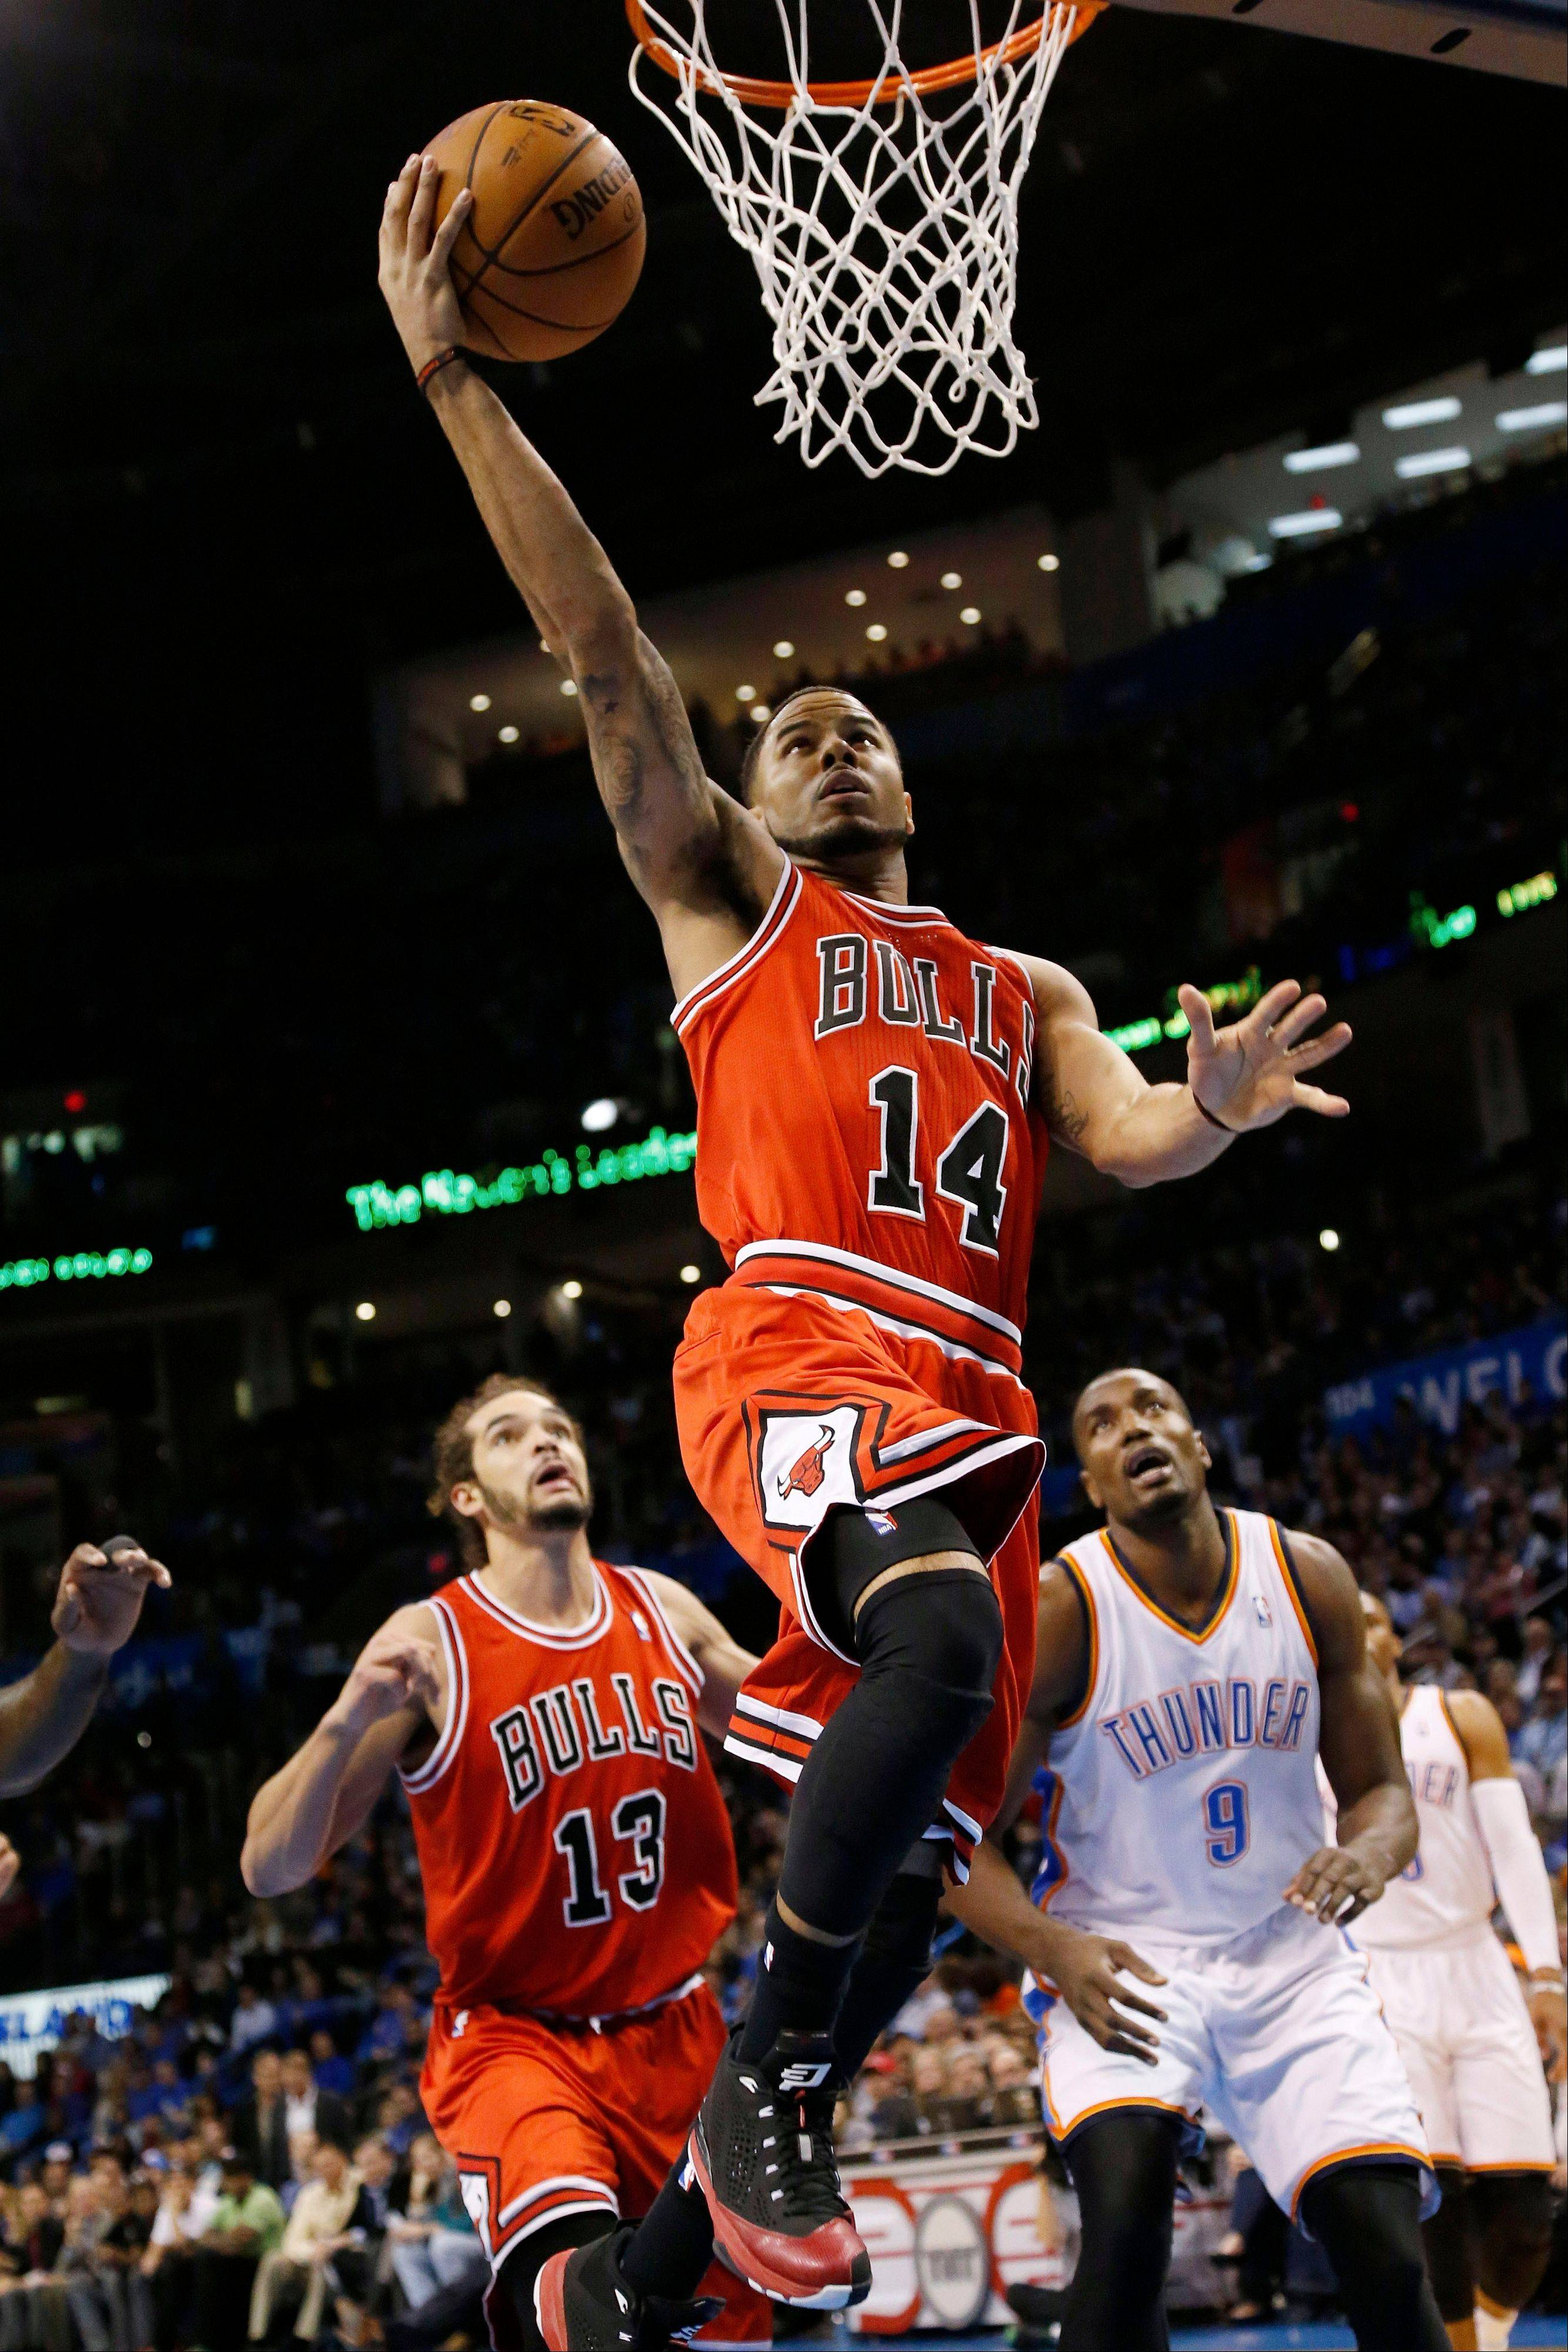 Bulls guard D.J. Augustin has �just been huge� for the team, according to Kirk Hinrich.